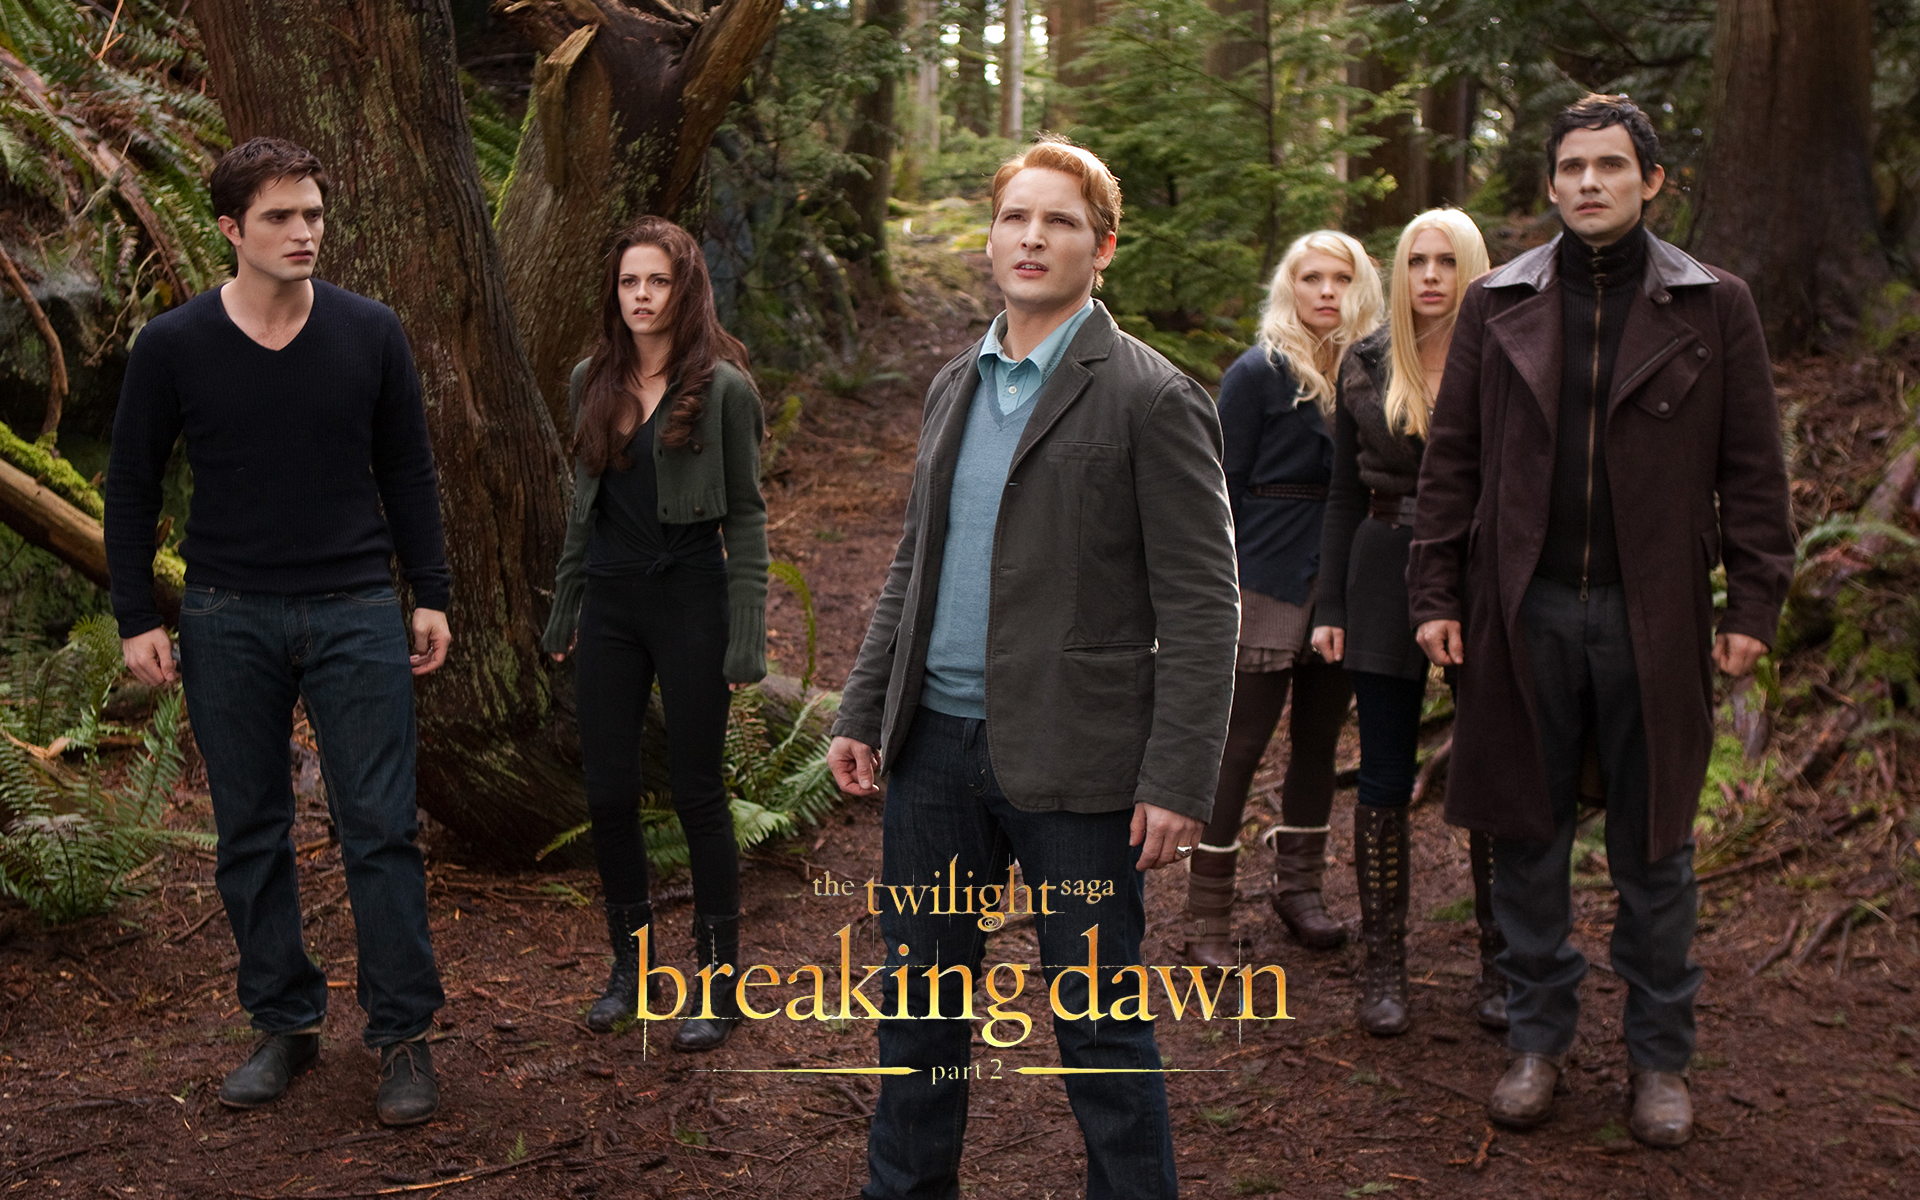 The Twilight Saga Breaking Dawn Part II Images 2 Wallpaper HD And Background Photos